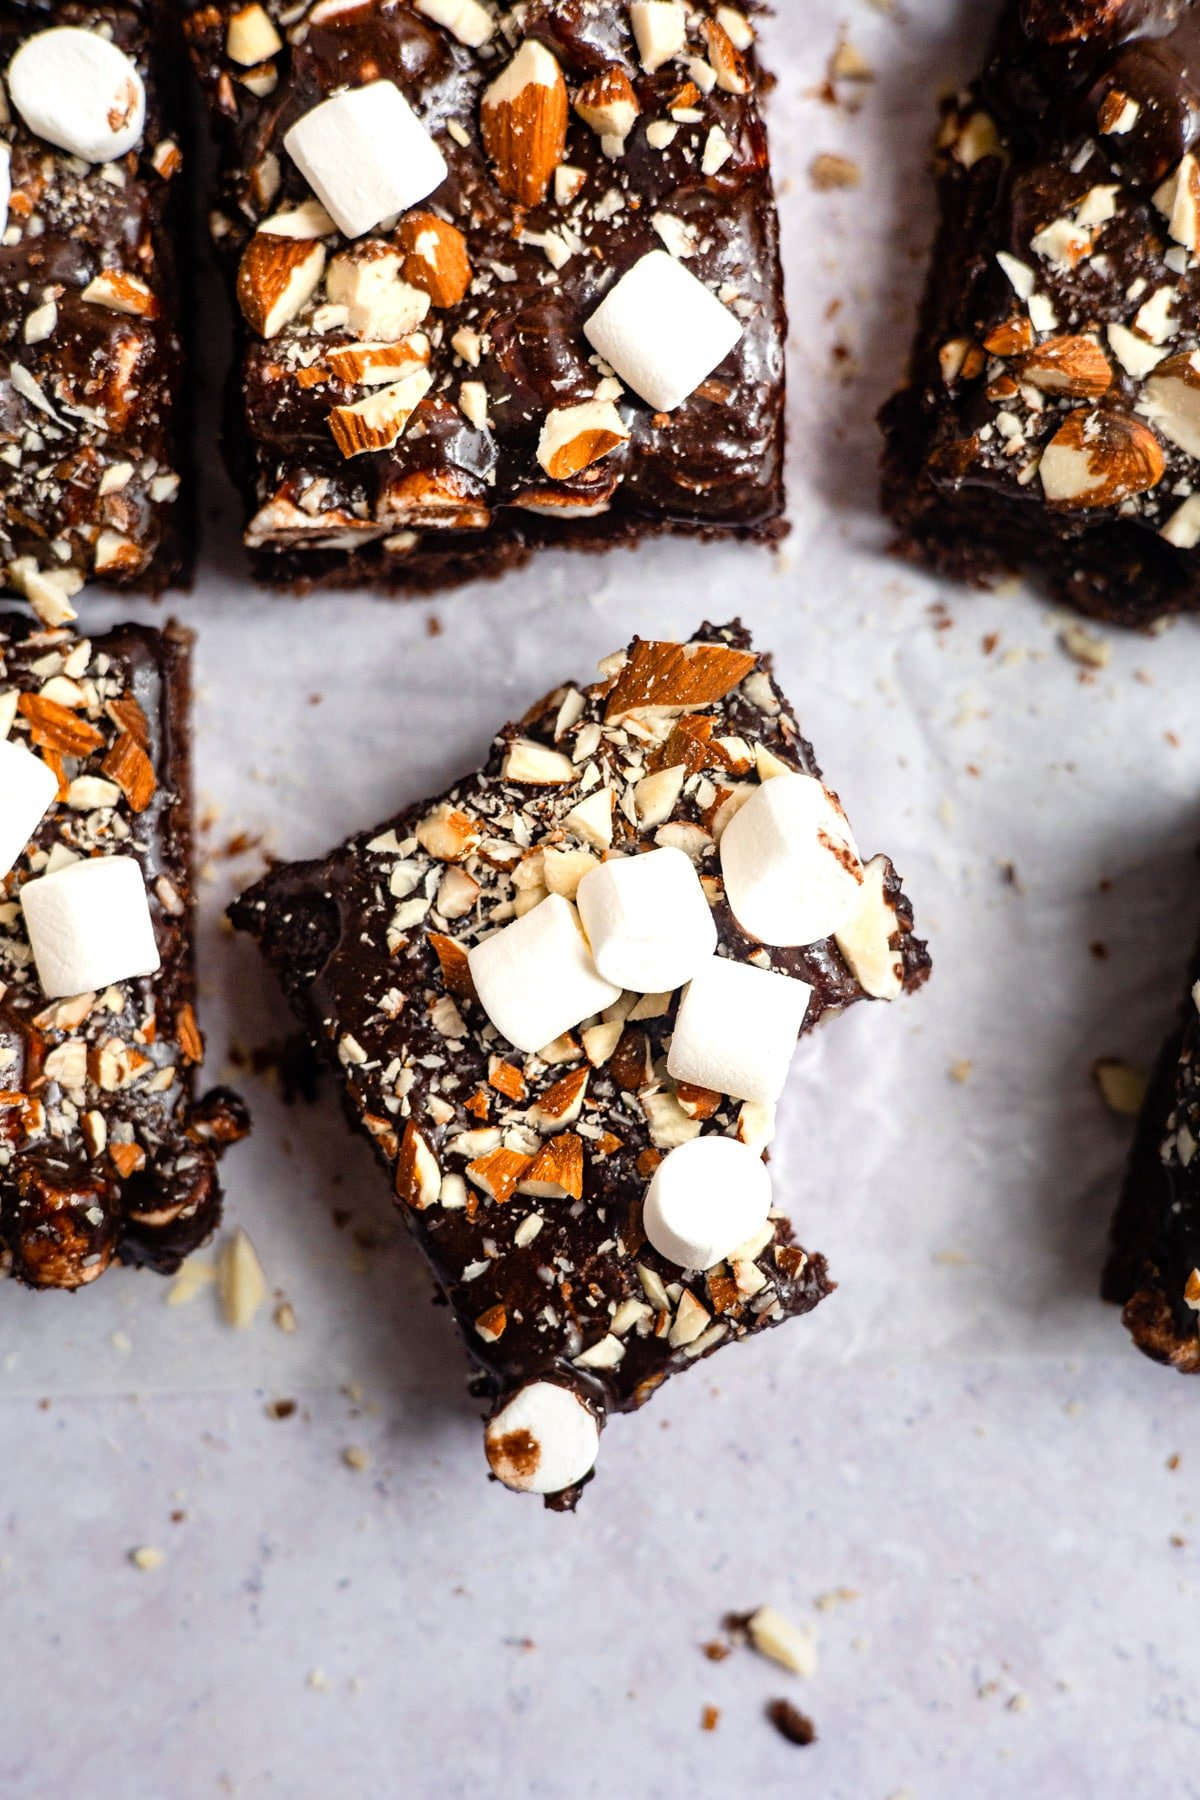 Slice of rocky road sheet cake with a bite out of it.